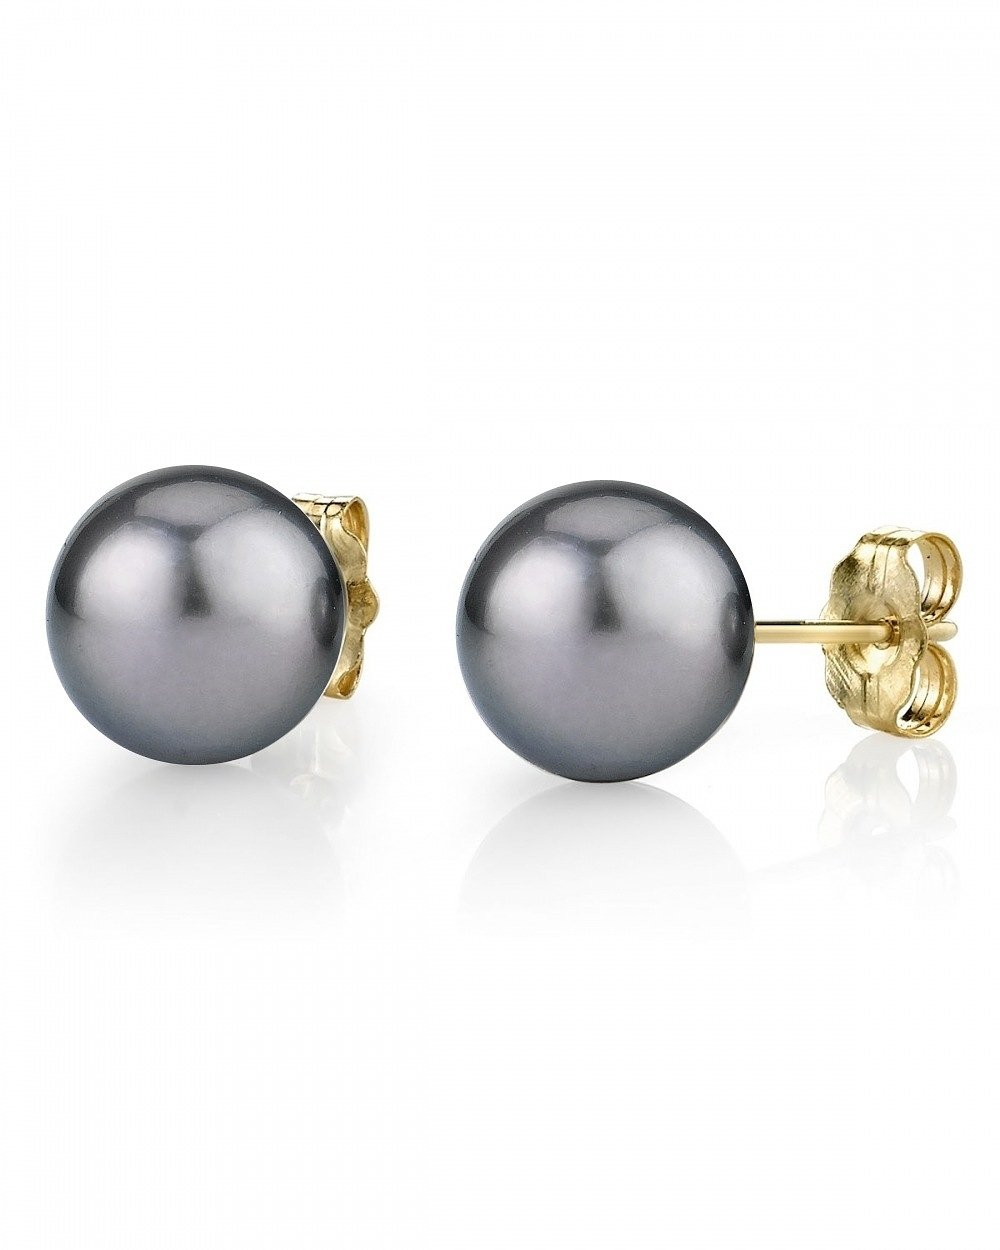 14K Gold 8-9mm Silver Tahitian South Sea Cultured Pearl Stud Earrings - AAA Quality